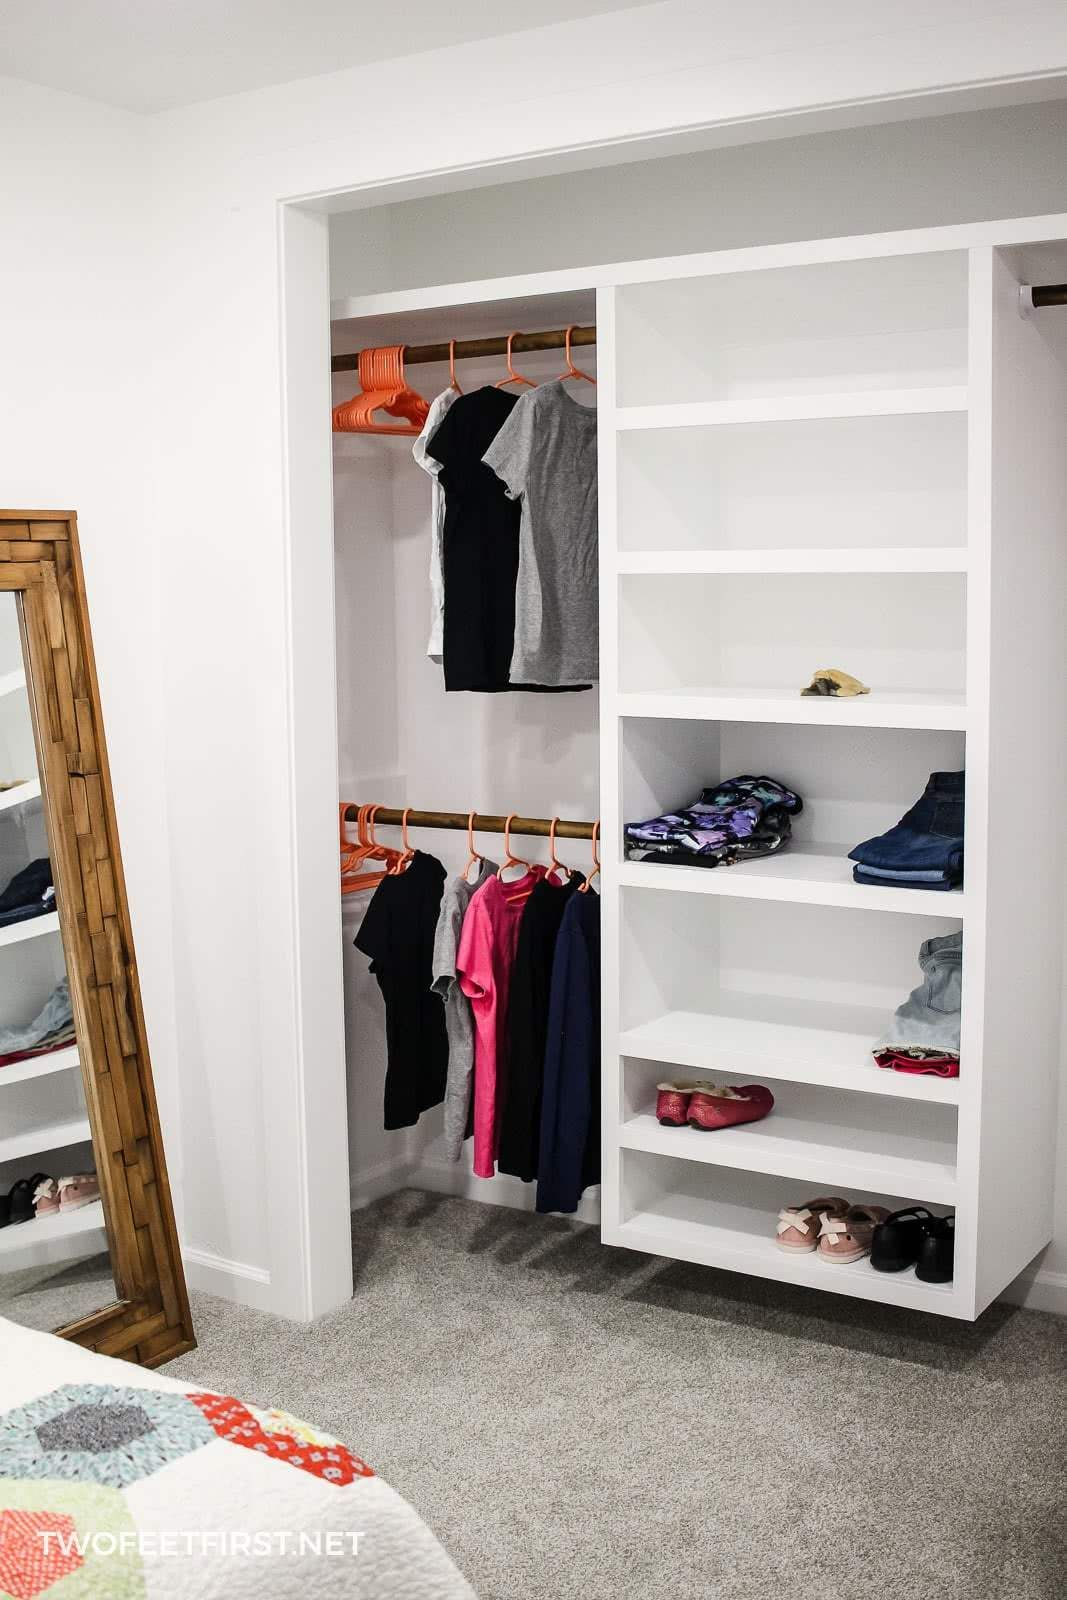 How To Build An Easy Diy Closet Organizer Closet Organization Diy Closet Organization Closet Small Bedroom